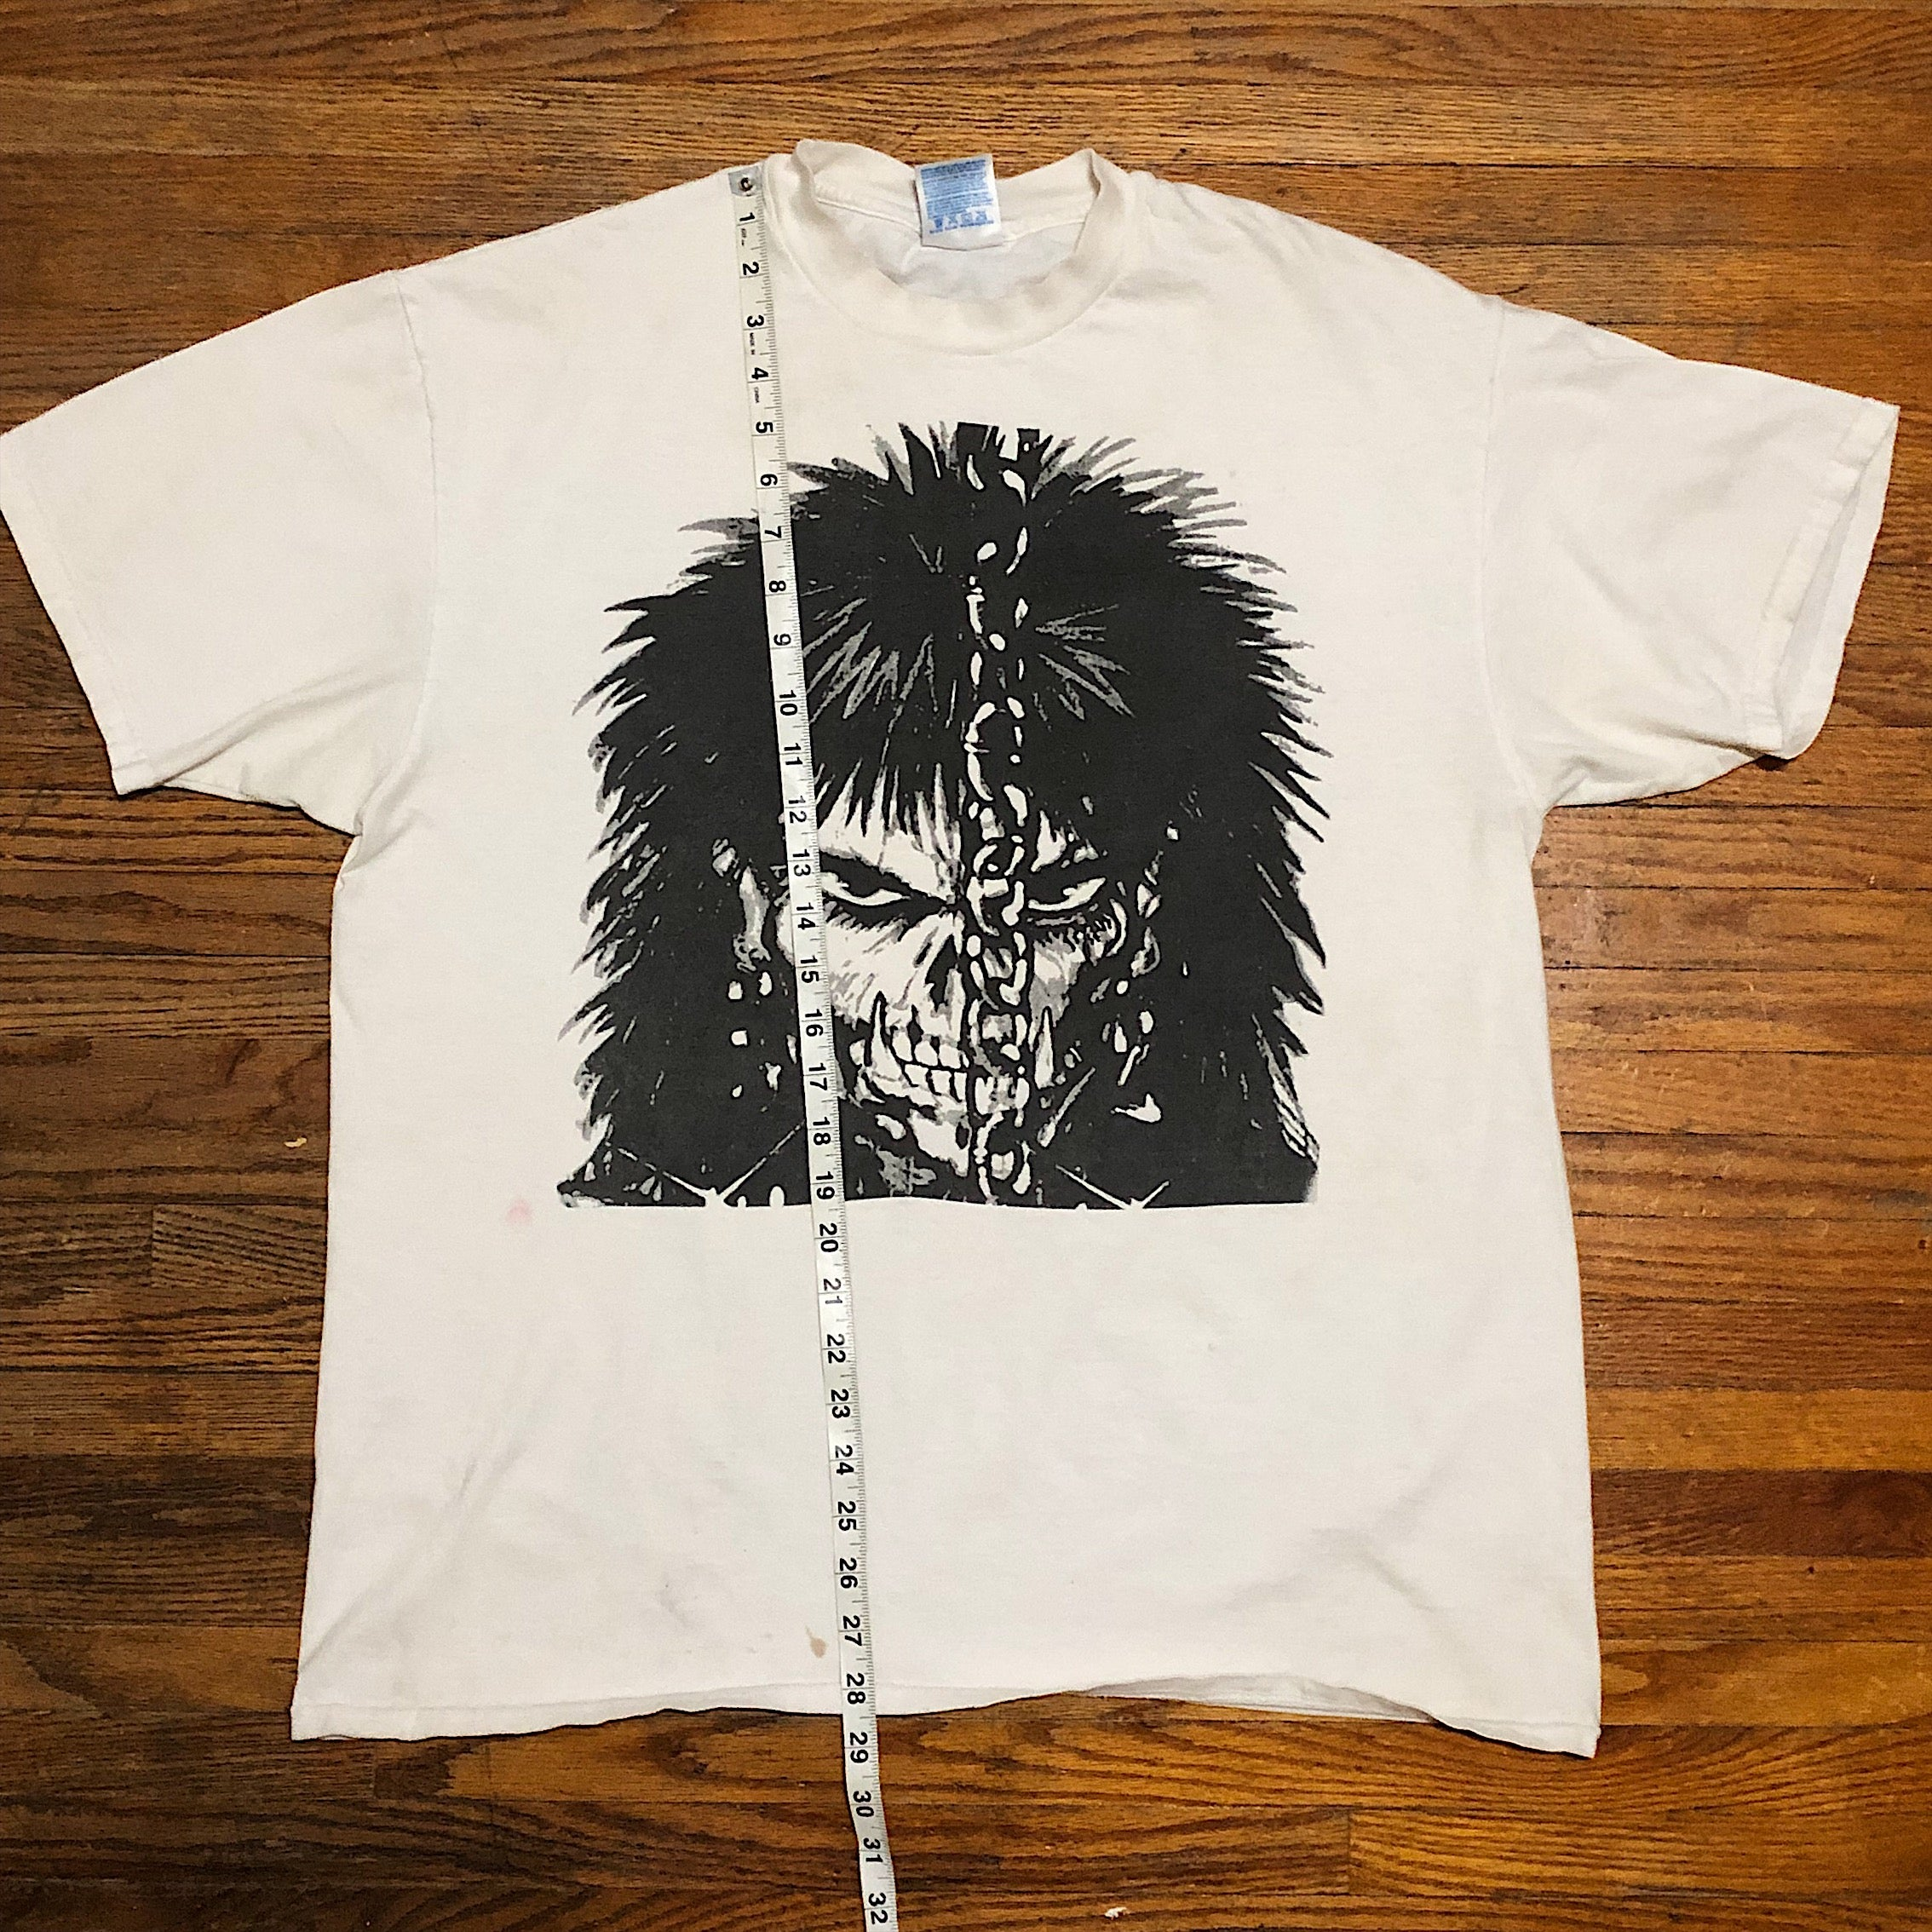 Vintage Punk Goth T-Shirt from the 90s | XL